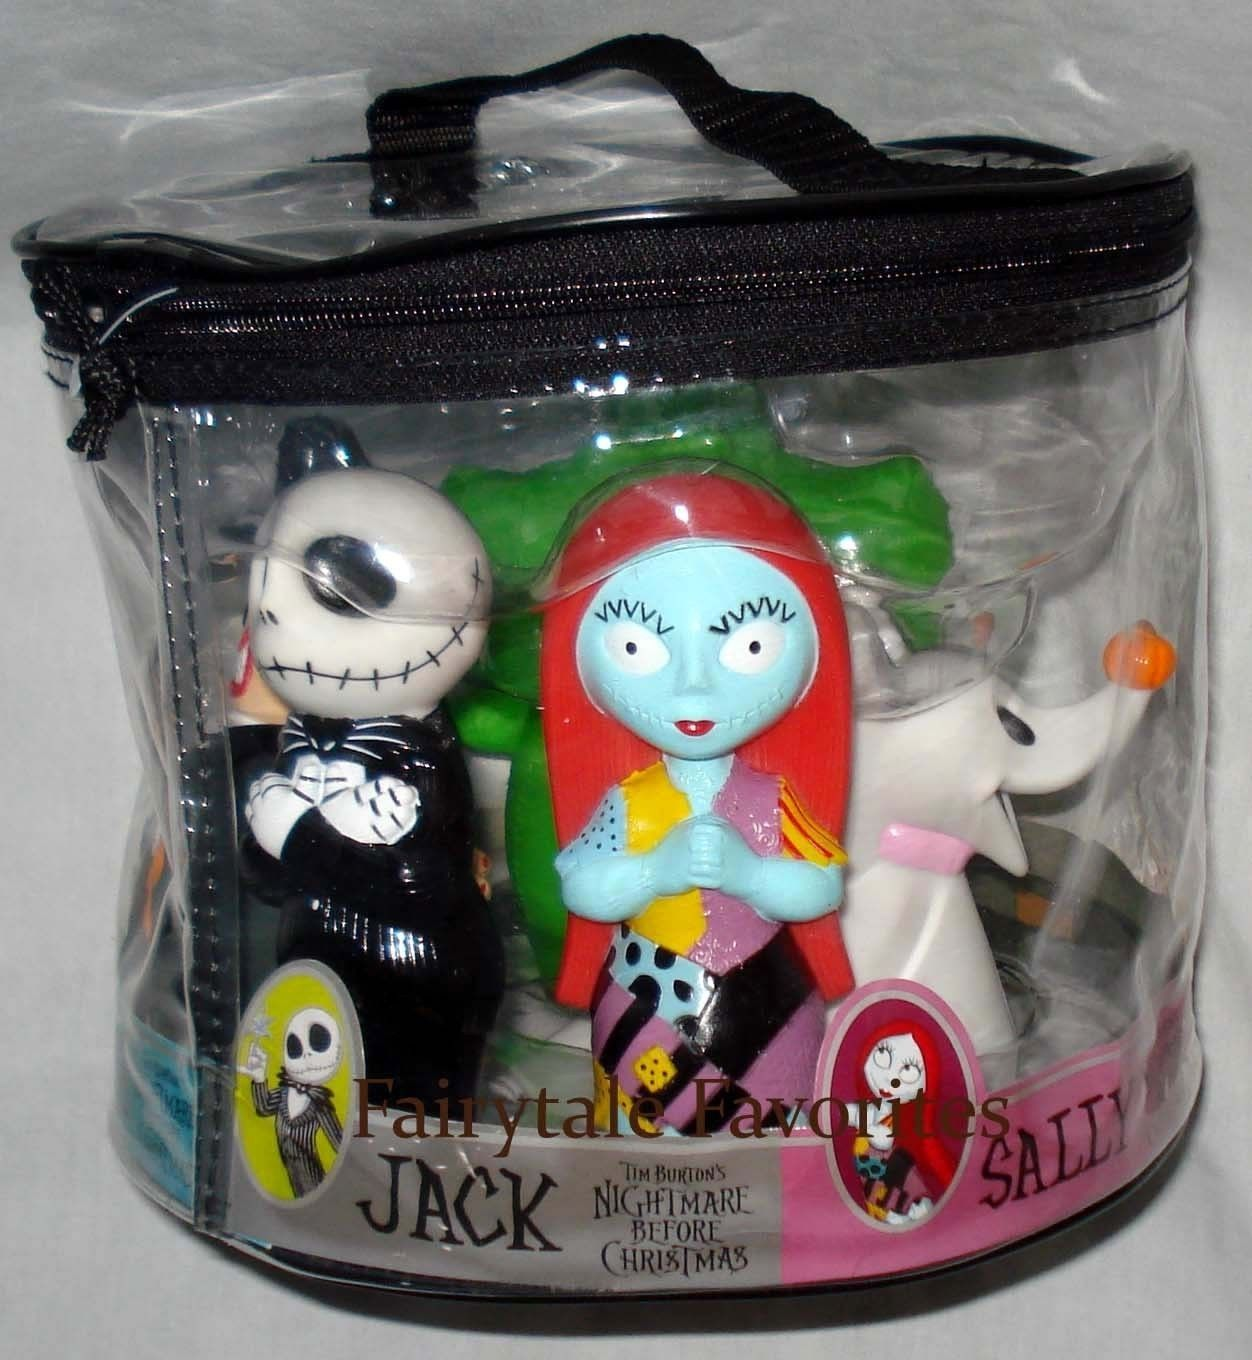 Jack skellington bathroom set - Tim Burton S Nightmare Before Christmas Bath Toy Set New Rare 5 Pieces Ebay